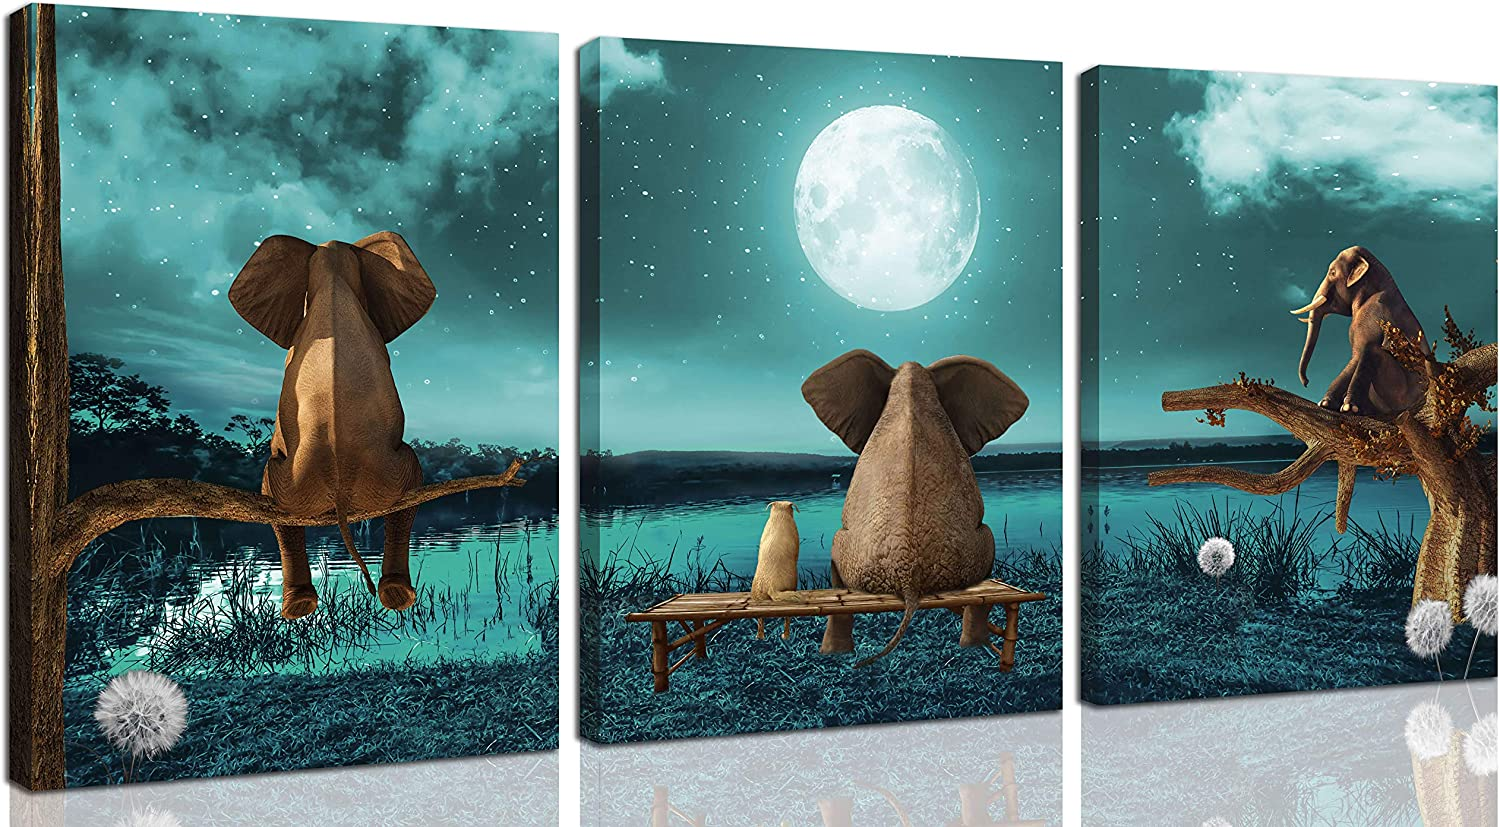 Bathroom Decor Wall-Art - Elephant Wall Art For Bedroom - Animal Canvas Artwork Picture Print Easy To Hang On The Wall Size 12x16 Inches x3Piece